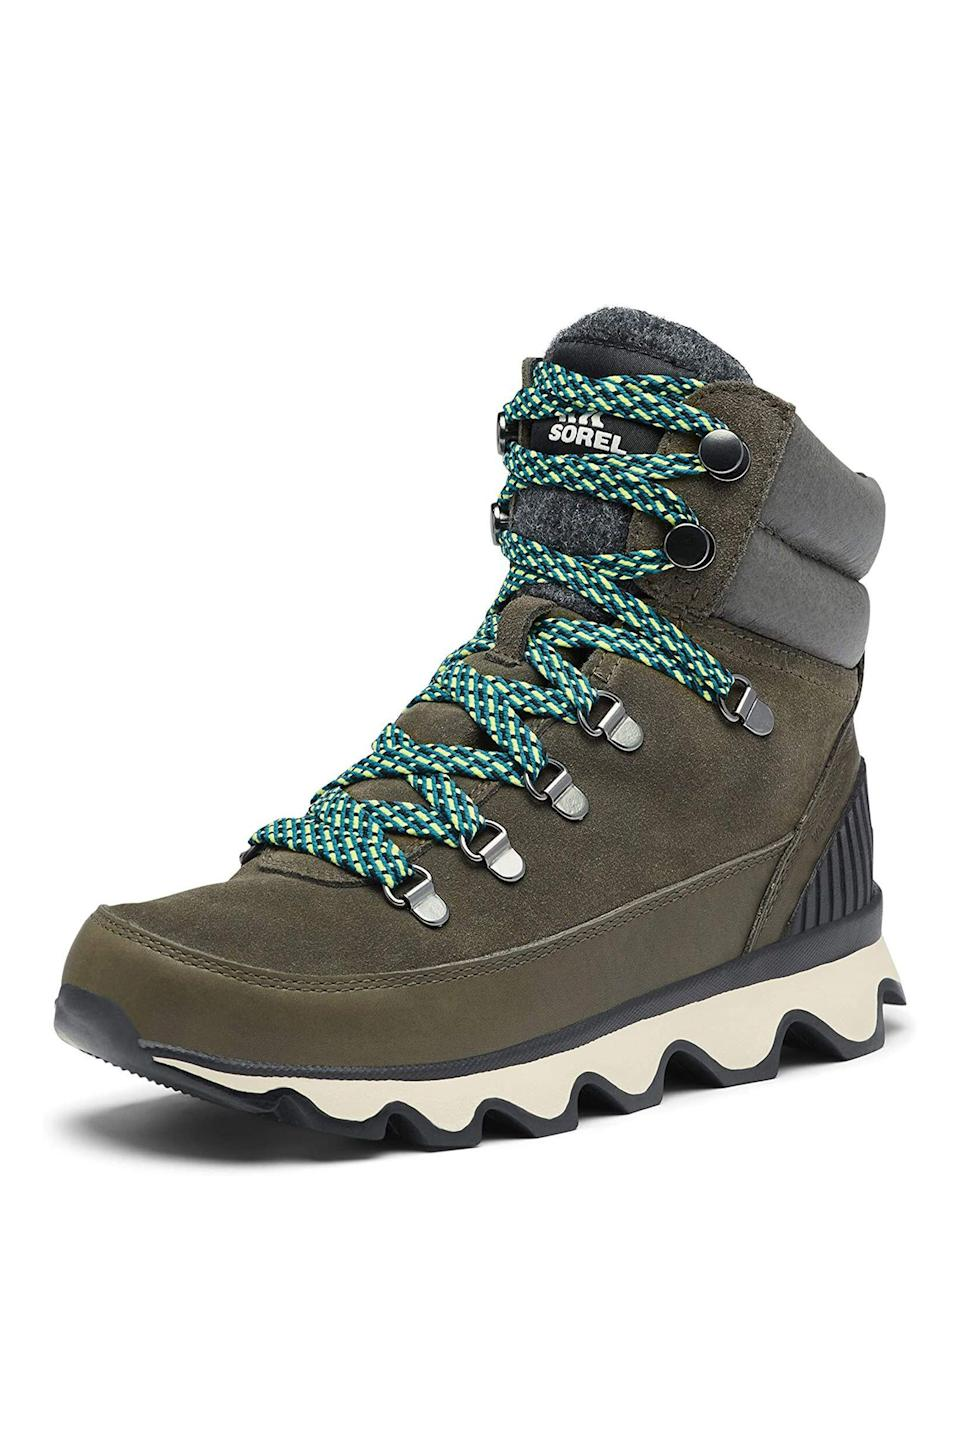 """<p><strong>Sorel</strong></p><p>amazon.com</p><p><strong>$209.99</strong></p><p><a href=""""https://www.amazon.com/dp/B08B7WWC2T?tag=syn-yahoo-20&ascsubtag=%5Bartid%7C10051.g.34620096%5Bsrc%7Cyahoo-us"""" rel=""""nofollow noopener"""" target=""""_blank"""" data-ylk=""""slk:shop it"""" class=""""link rapid-noclick-resp"""">shop it</a></p><p>Behold, a pair of waterproof sneakers that are practical and chic in equal measure. Not only will these keep toes from freezing in the rain and snow, but also they have traction that makes them well-suited for hikes (especially the ones where you'd maybe like to try and get a good outdoorsy 'gram). </p>"""